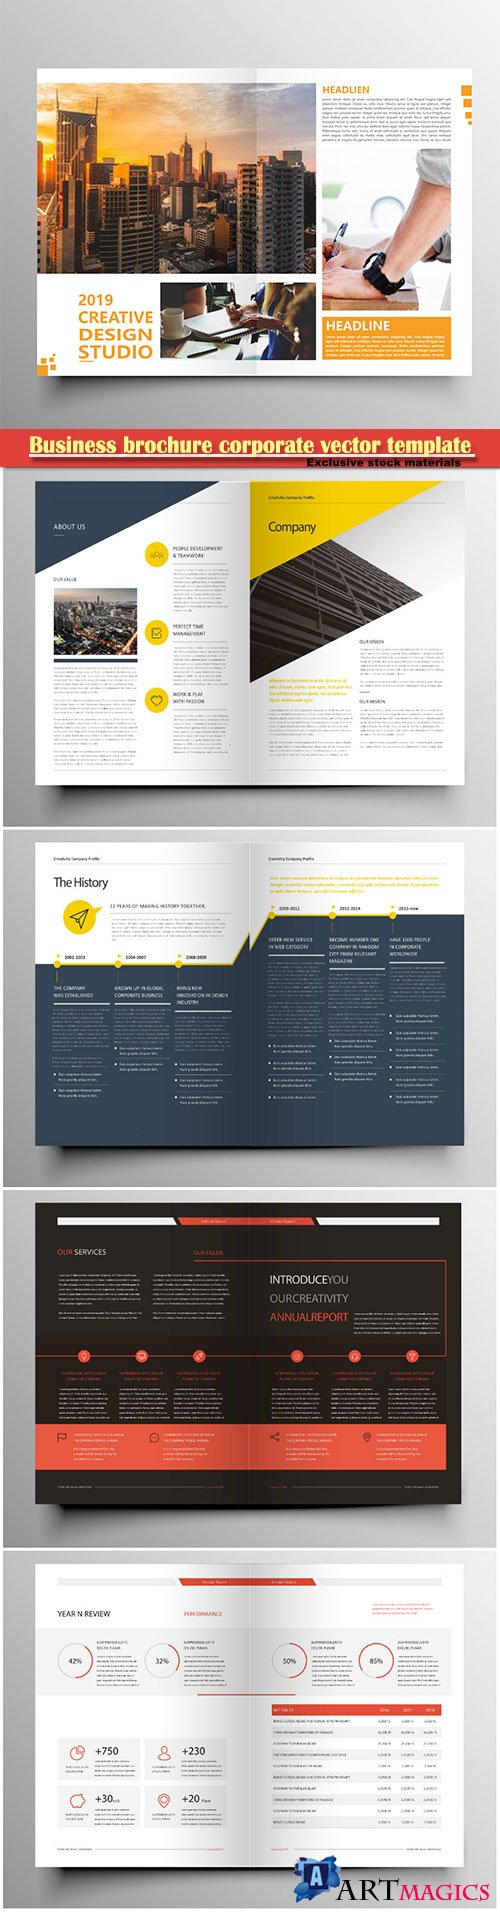 Business brochure corporate vector template, magazine flyer mockup # 44